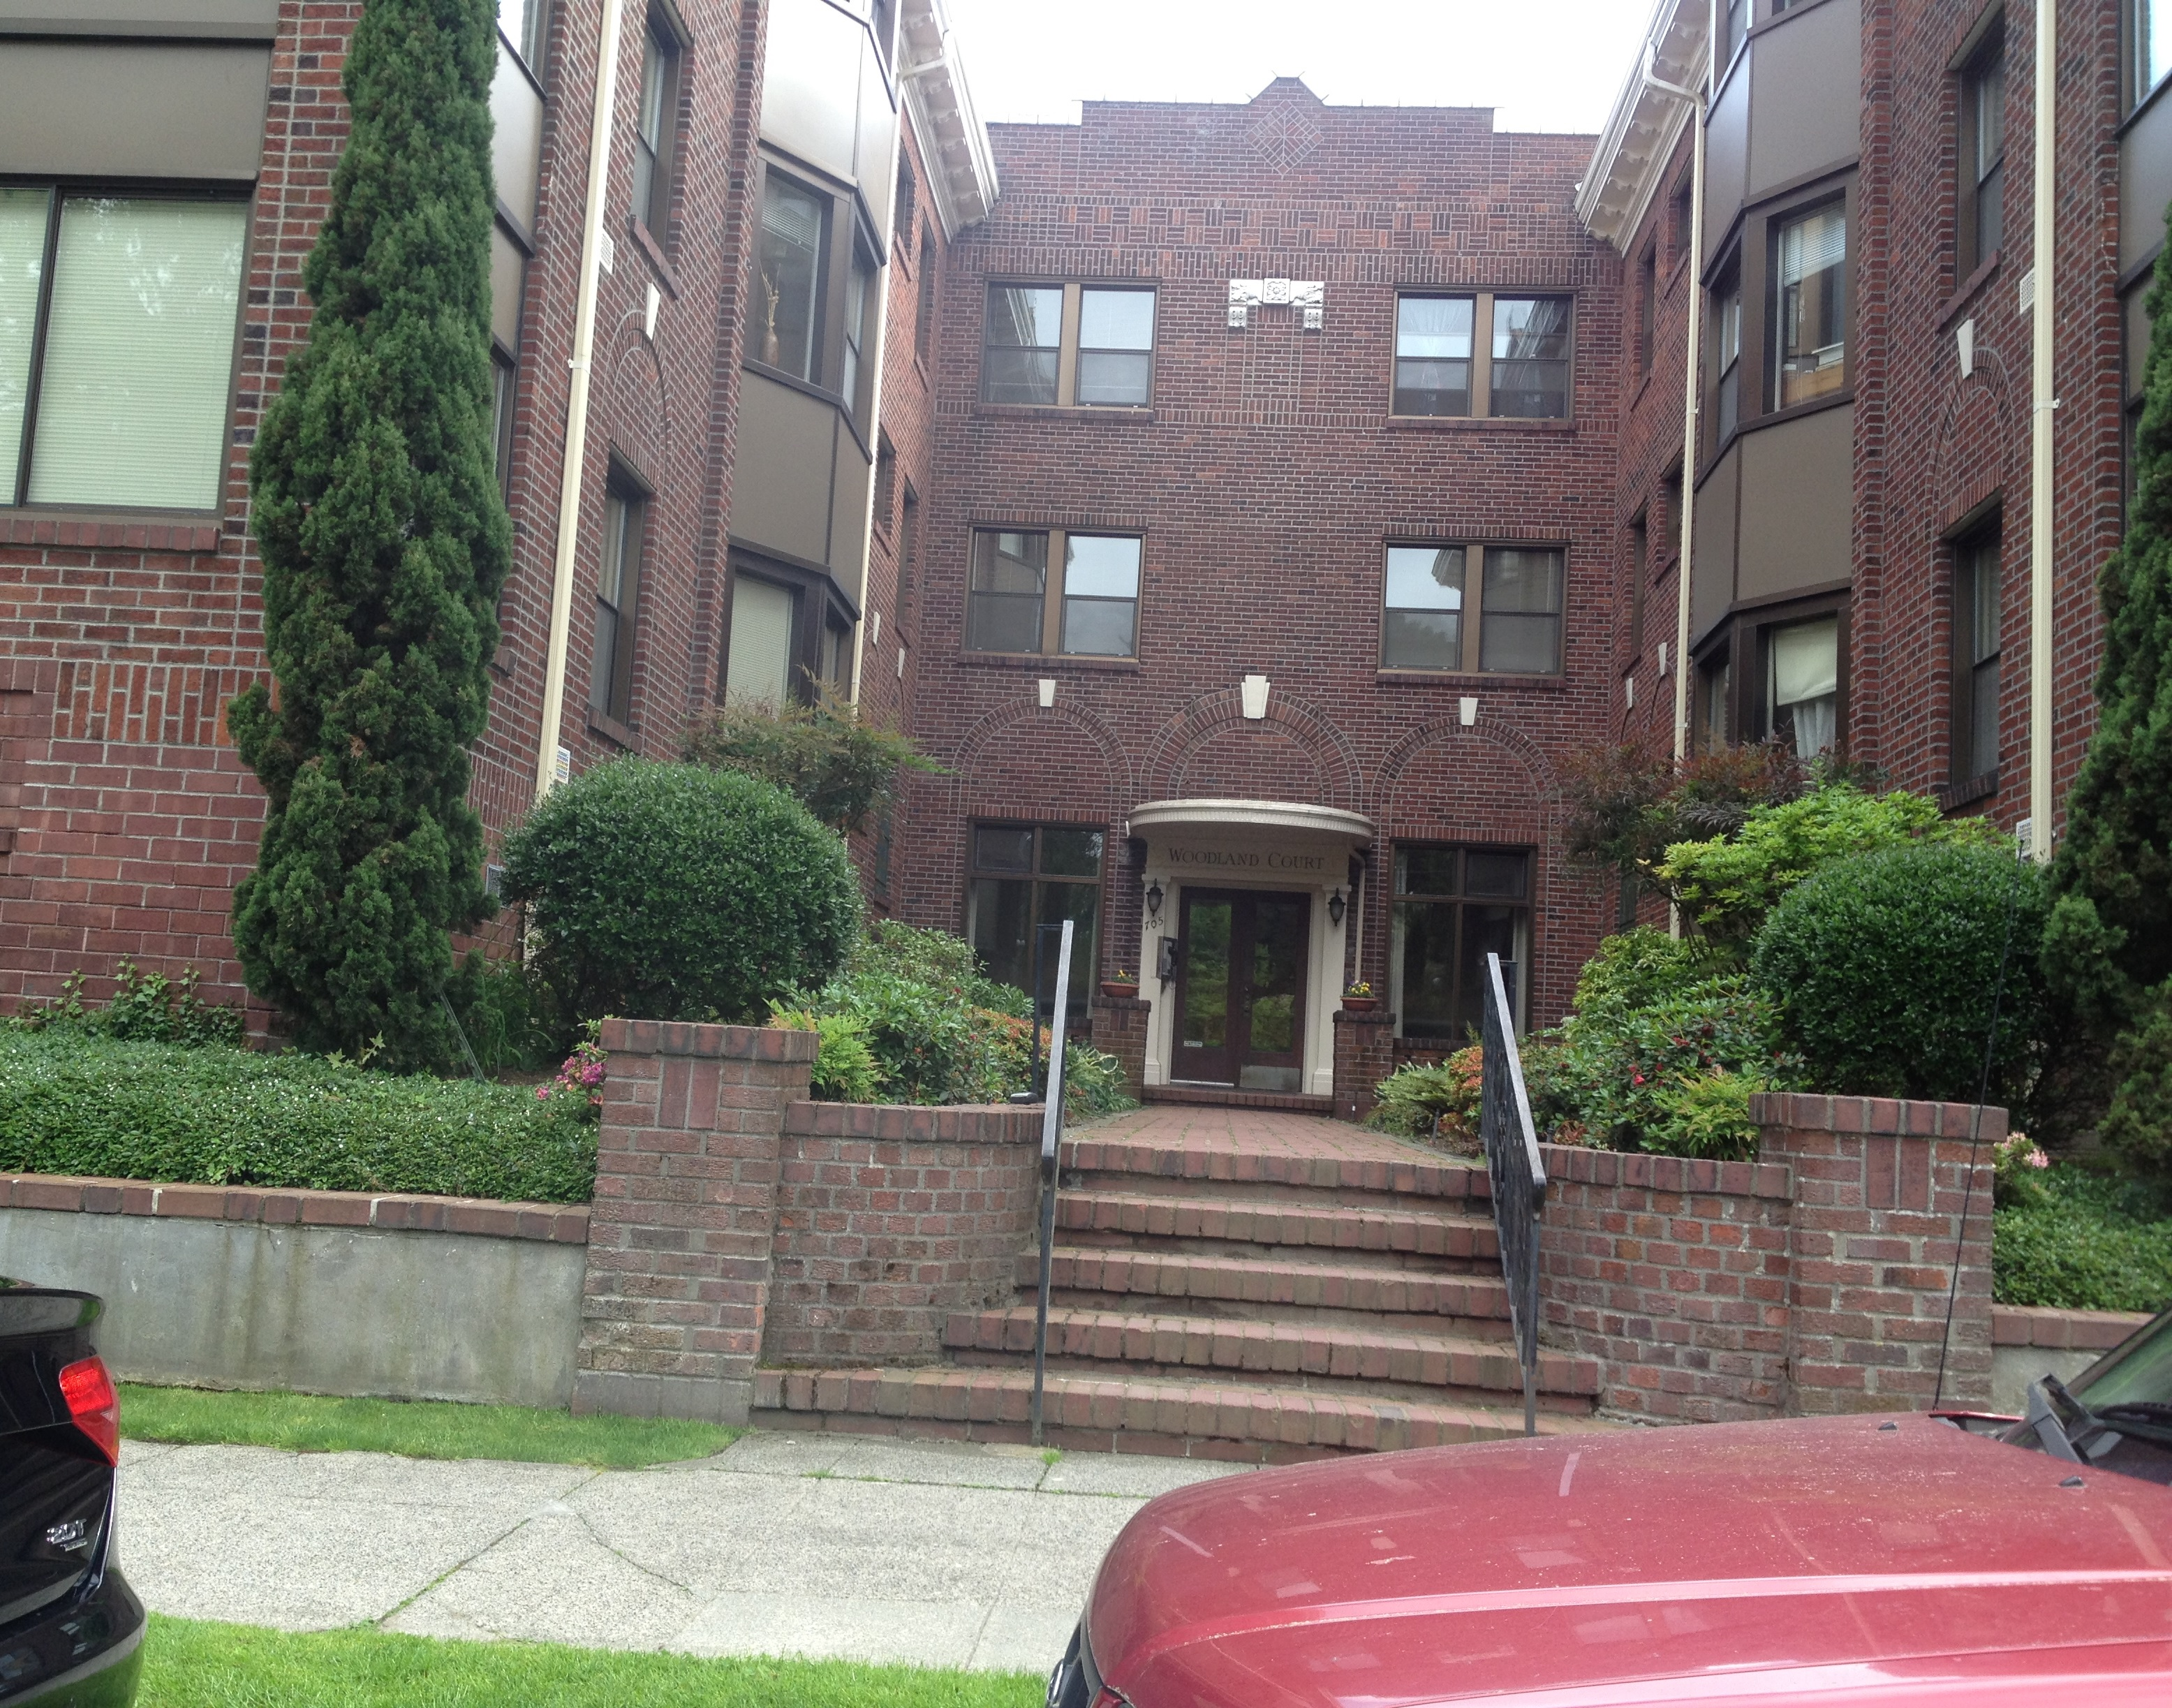 Historic preservation makes Seattle a great place to live